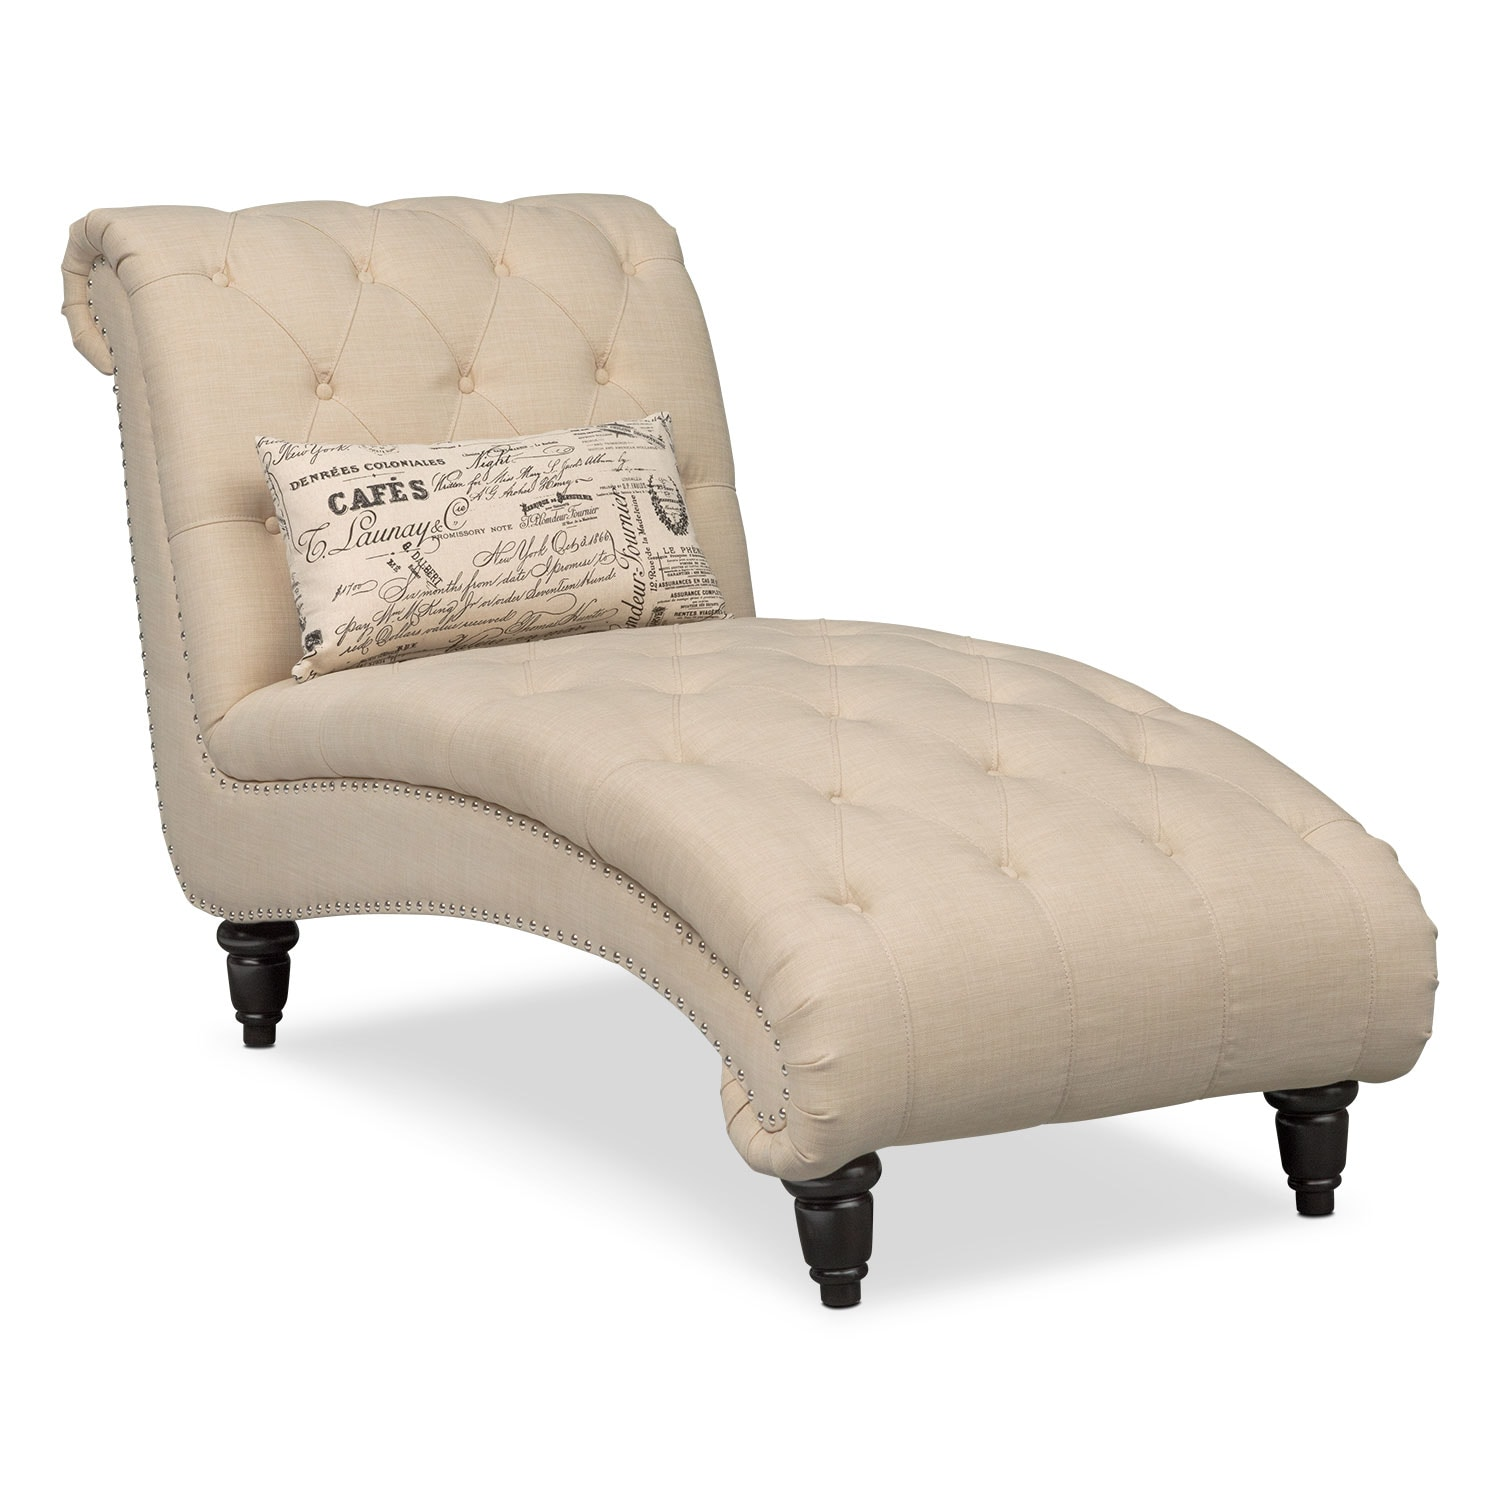 chaise living room furniture marisol chaise beige value city furniture and mattresses 15404